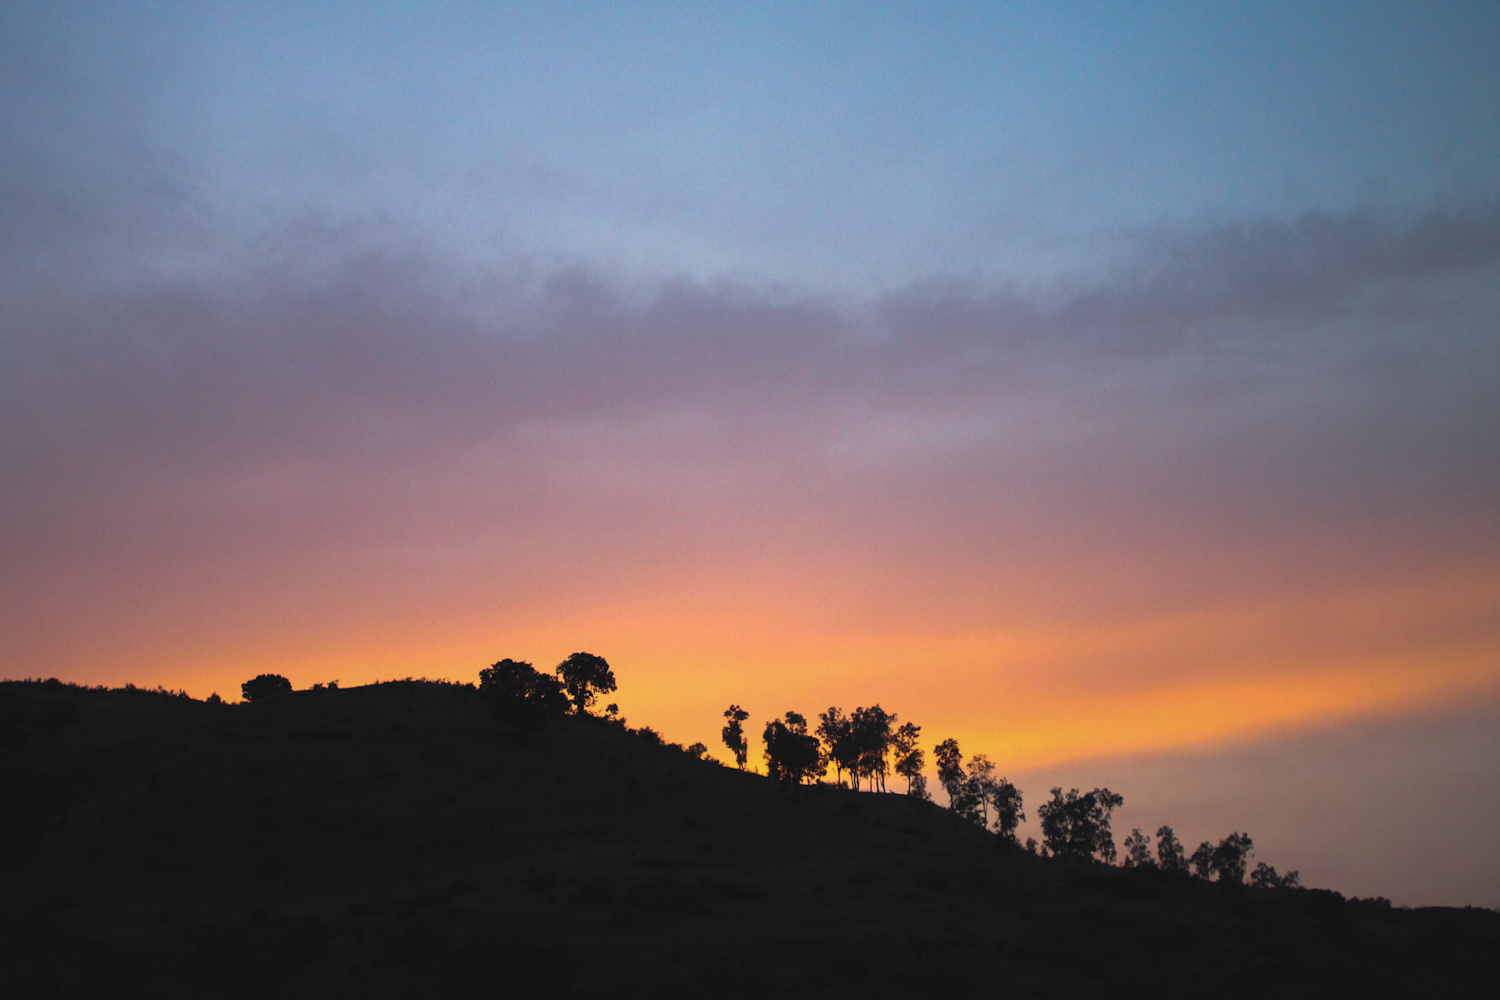 Sunset near Nashik